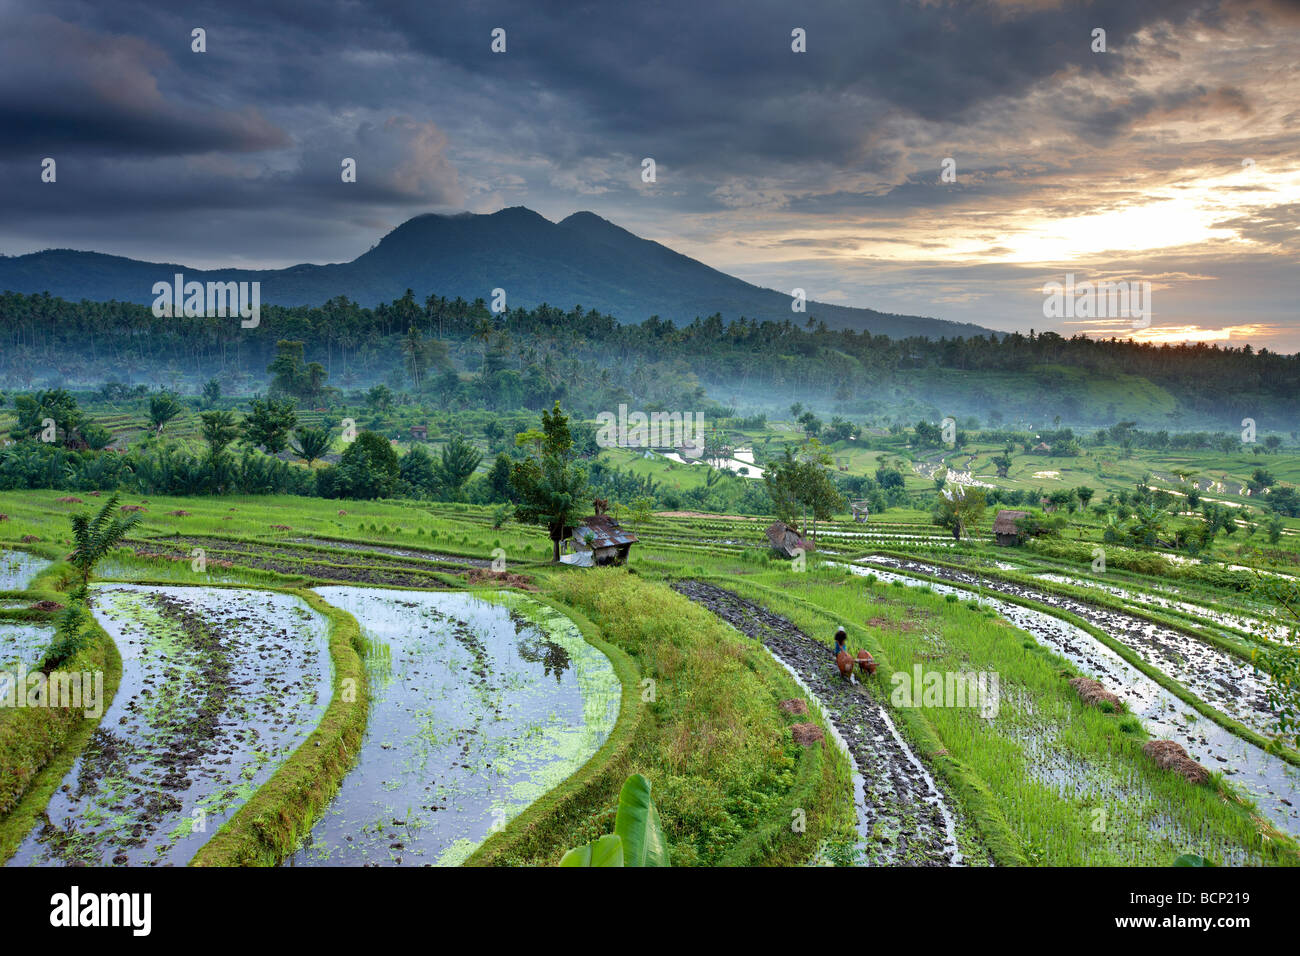 ox driven plough in the terraced rice fields nr Tirtagangga at dawn with the volcanic peak of Gunung Lempuyang, Stock Foto